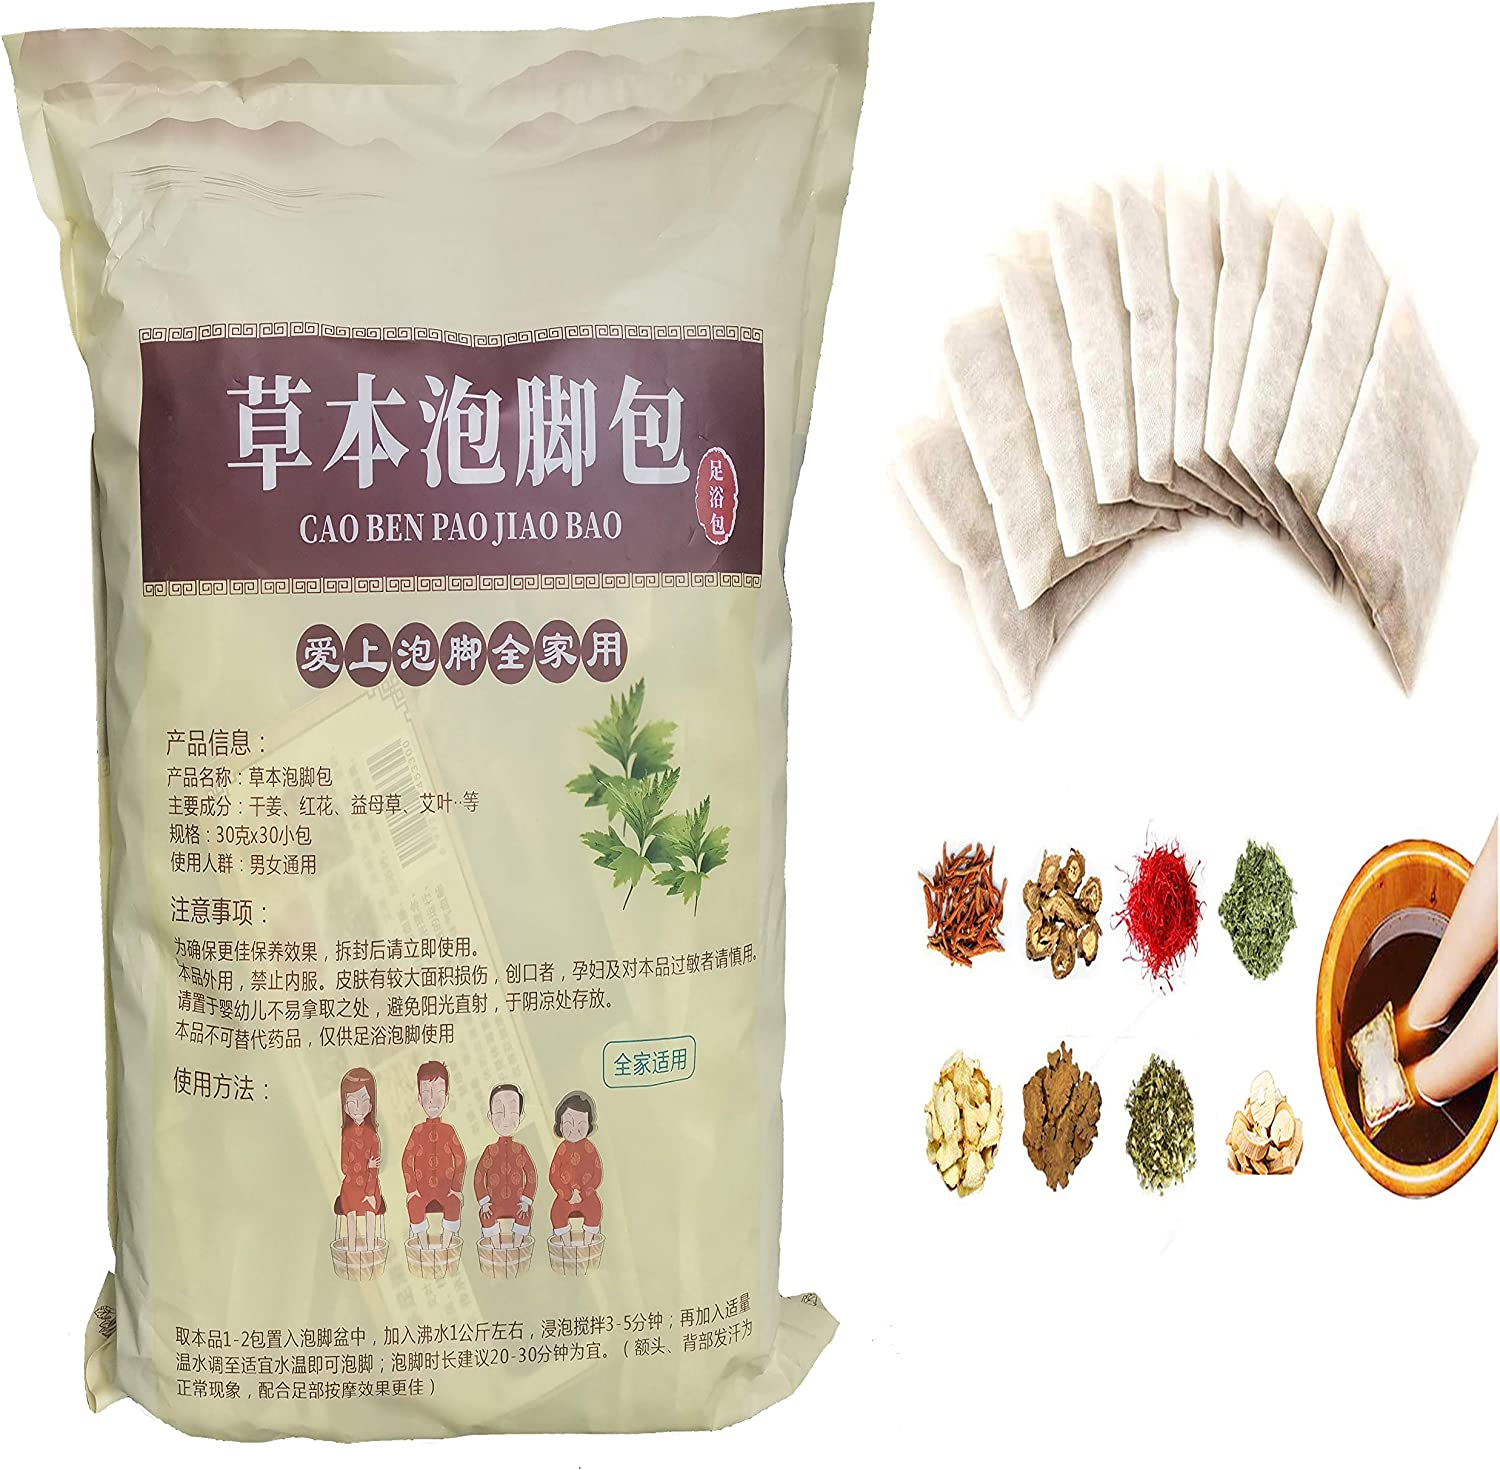 8Favors of Foot Bath Herb Chinese Soak Herbal Medicine Max 43% OFF spa free shipping